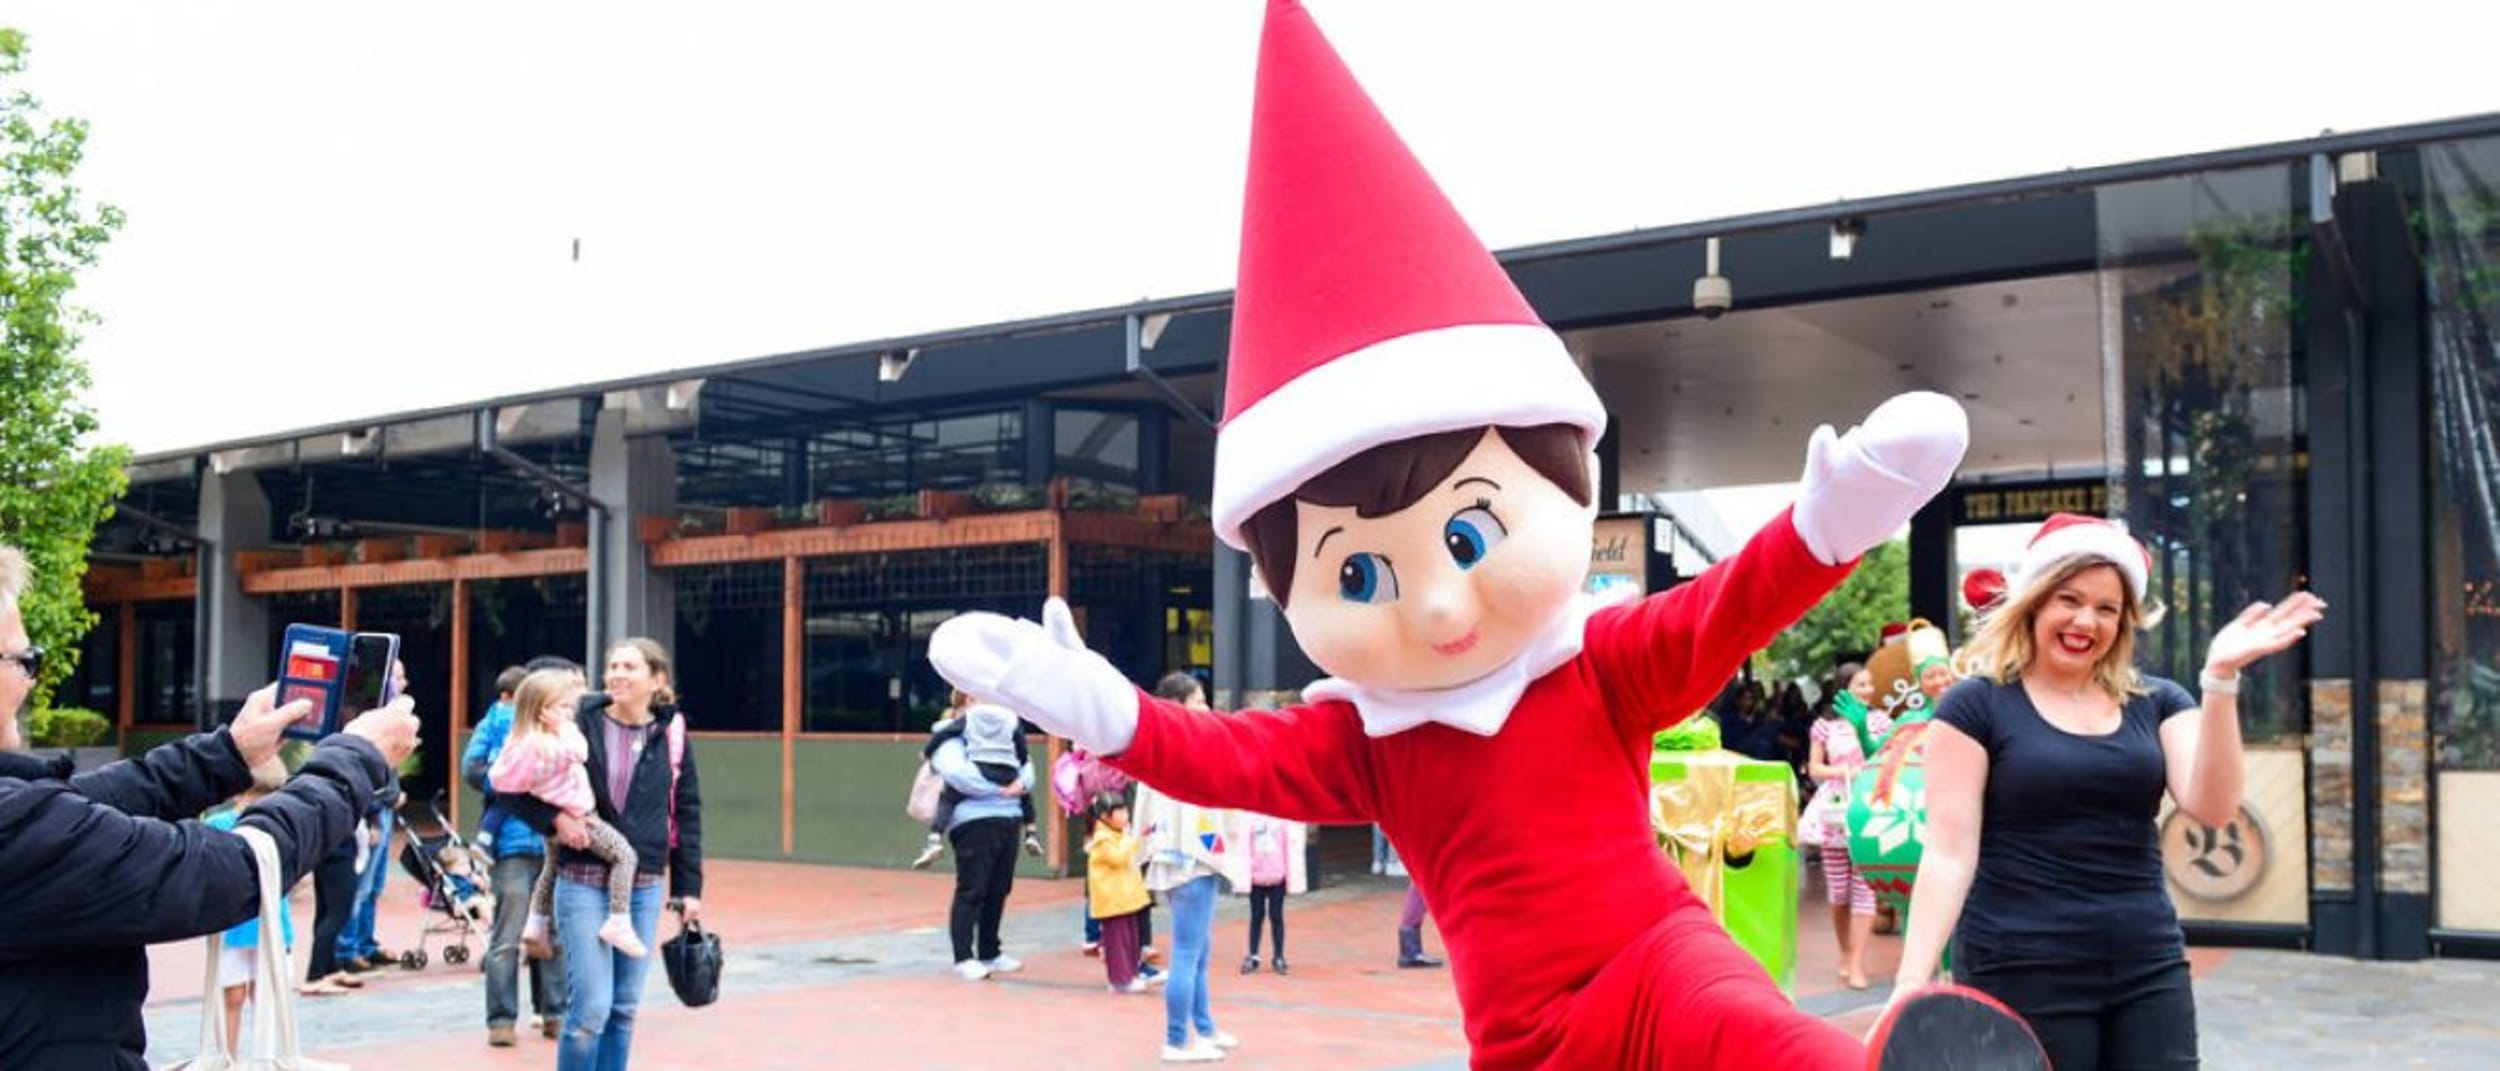 Meet The Elf on the Shelf® at Westfield Knox